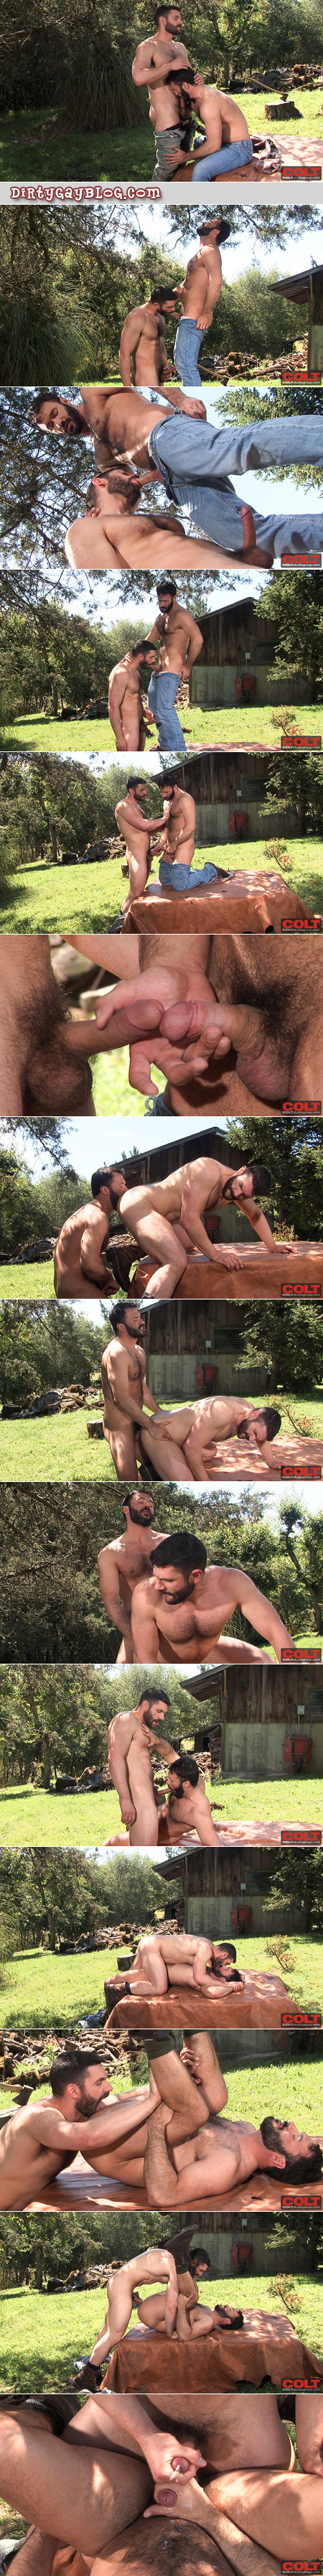 Butch, bearded hikers with hairy chests suck each other's dicks and fuck each other outside the cowboy barn.